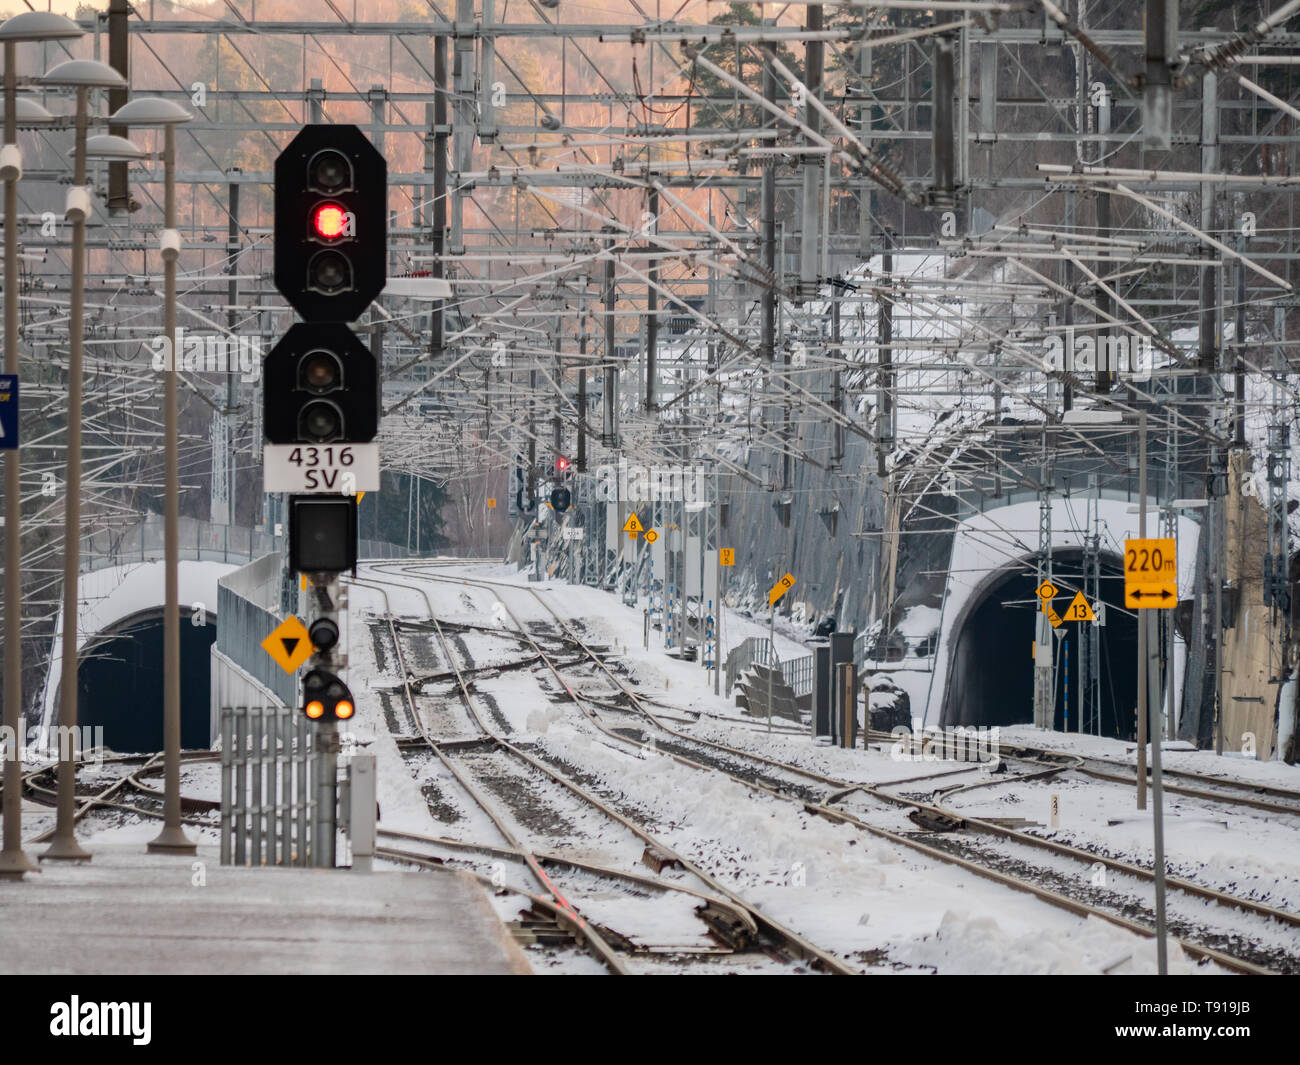 Railway lines and complicated grid of catenary power cables at the railway station in Sandvika, a suburb west of Oslo in Norway. Stock Photo